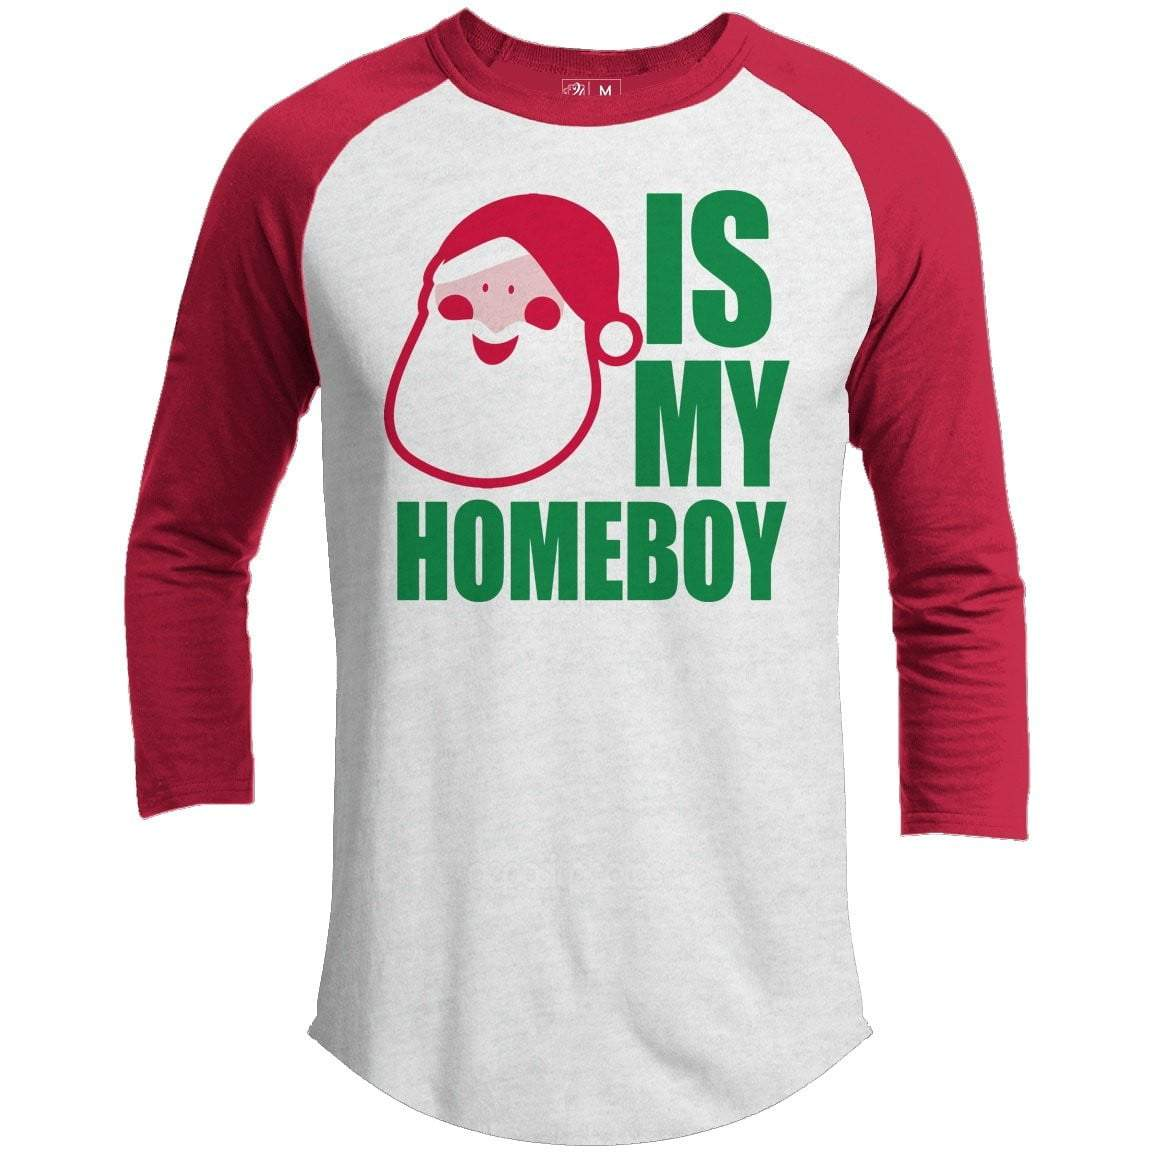 SANTA HOMEBOY Premium Youth Christmas Raglan